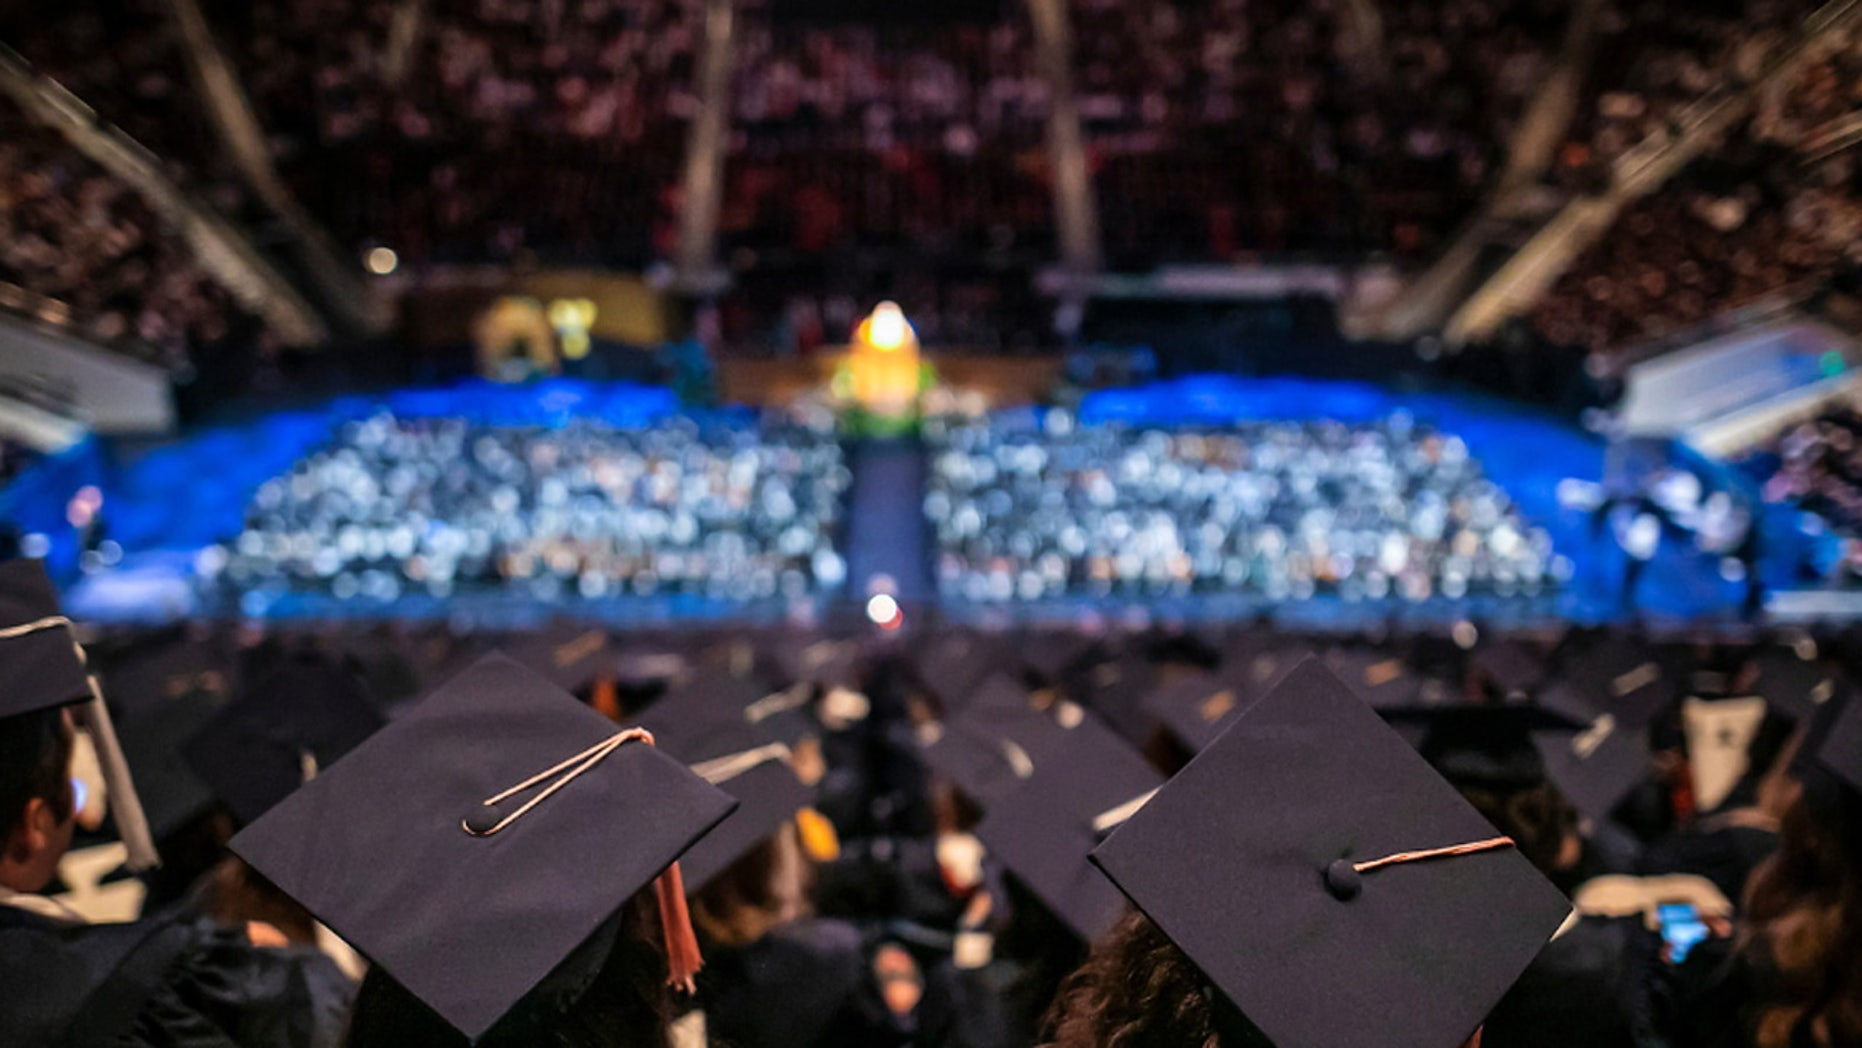 BYU valedictorian Matt Easton comes out as gay during graduation speech